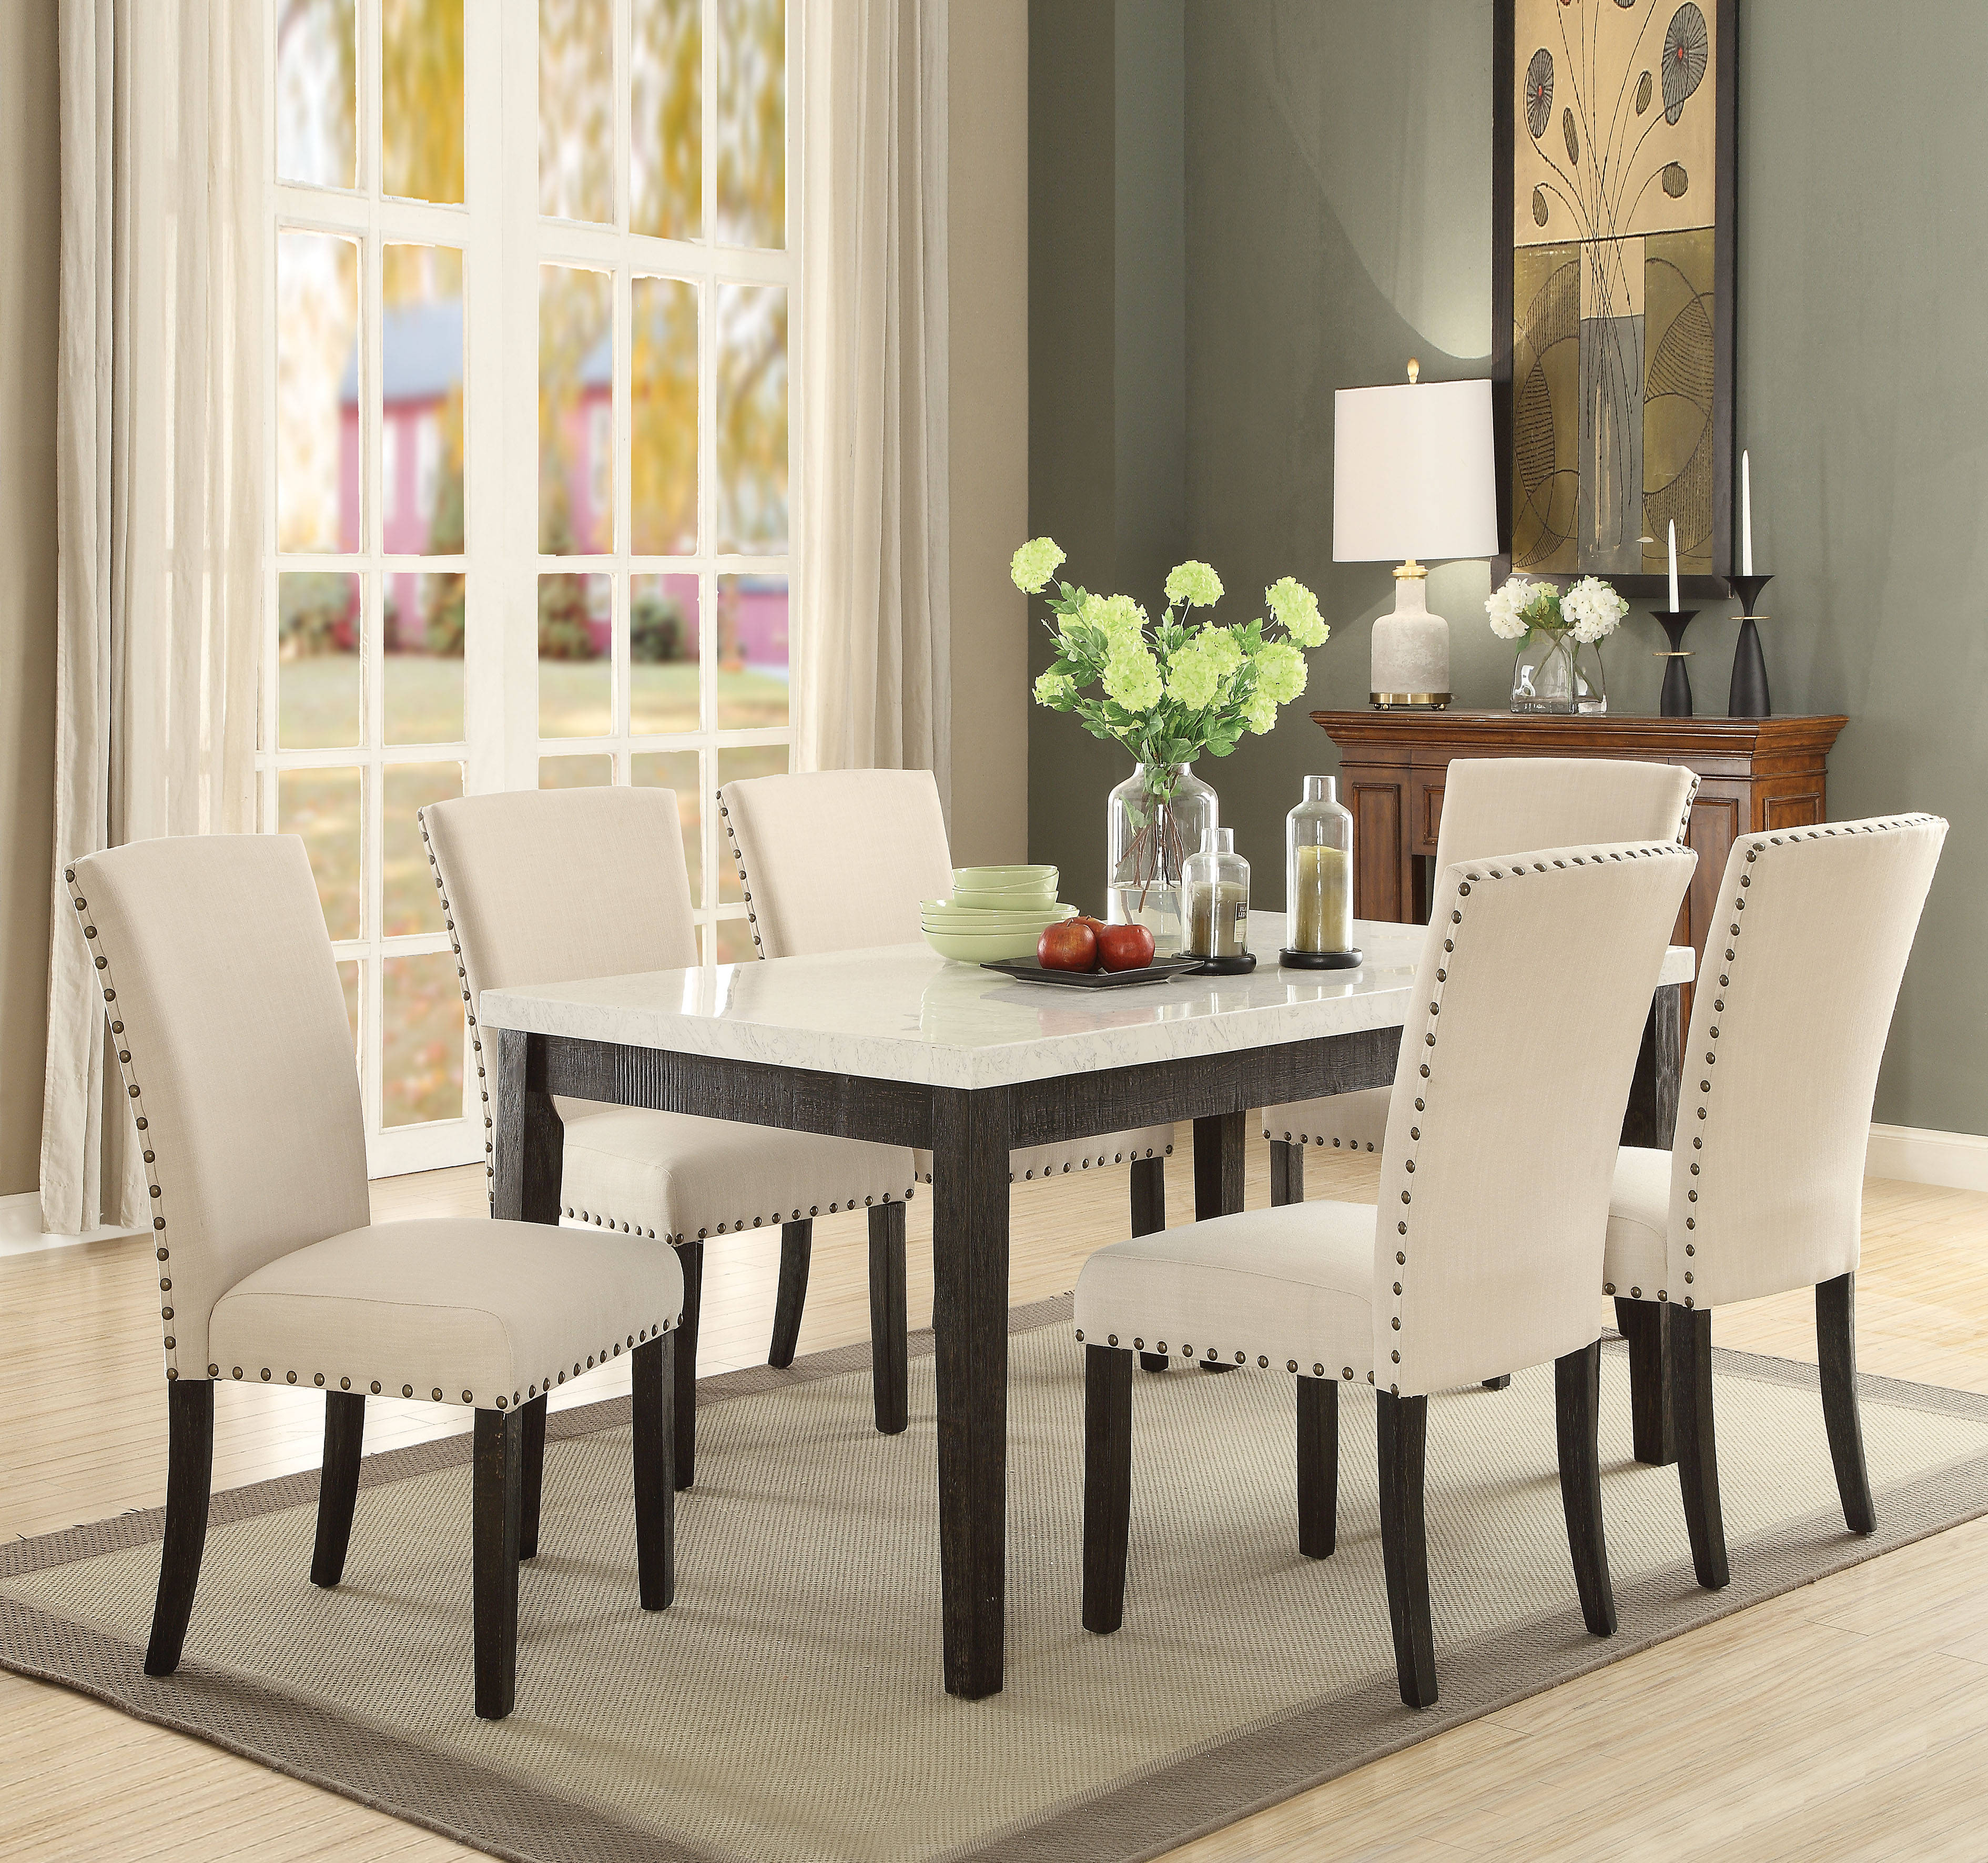 Acme Furniture Nolan 7pc Dining Room Set Click To Enlarge